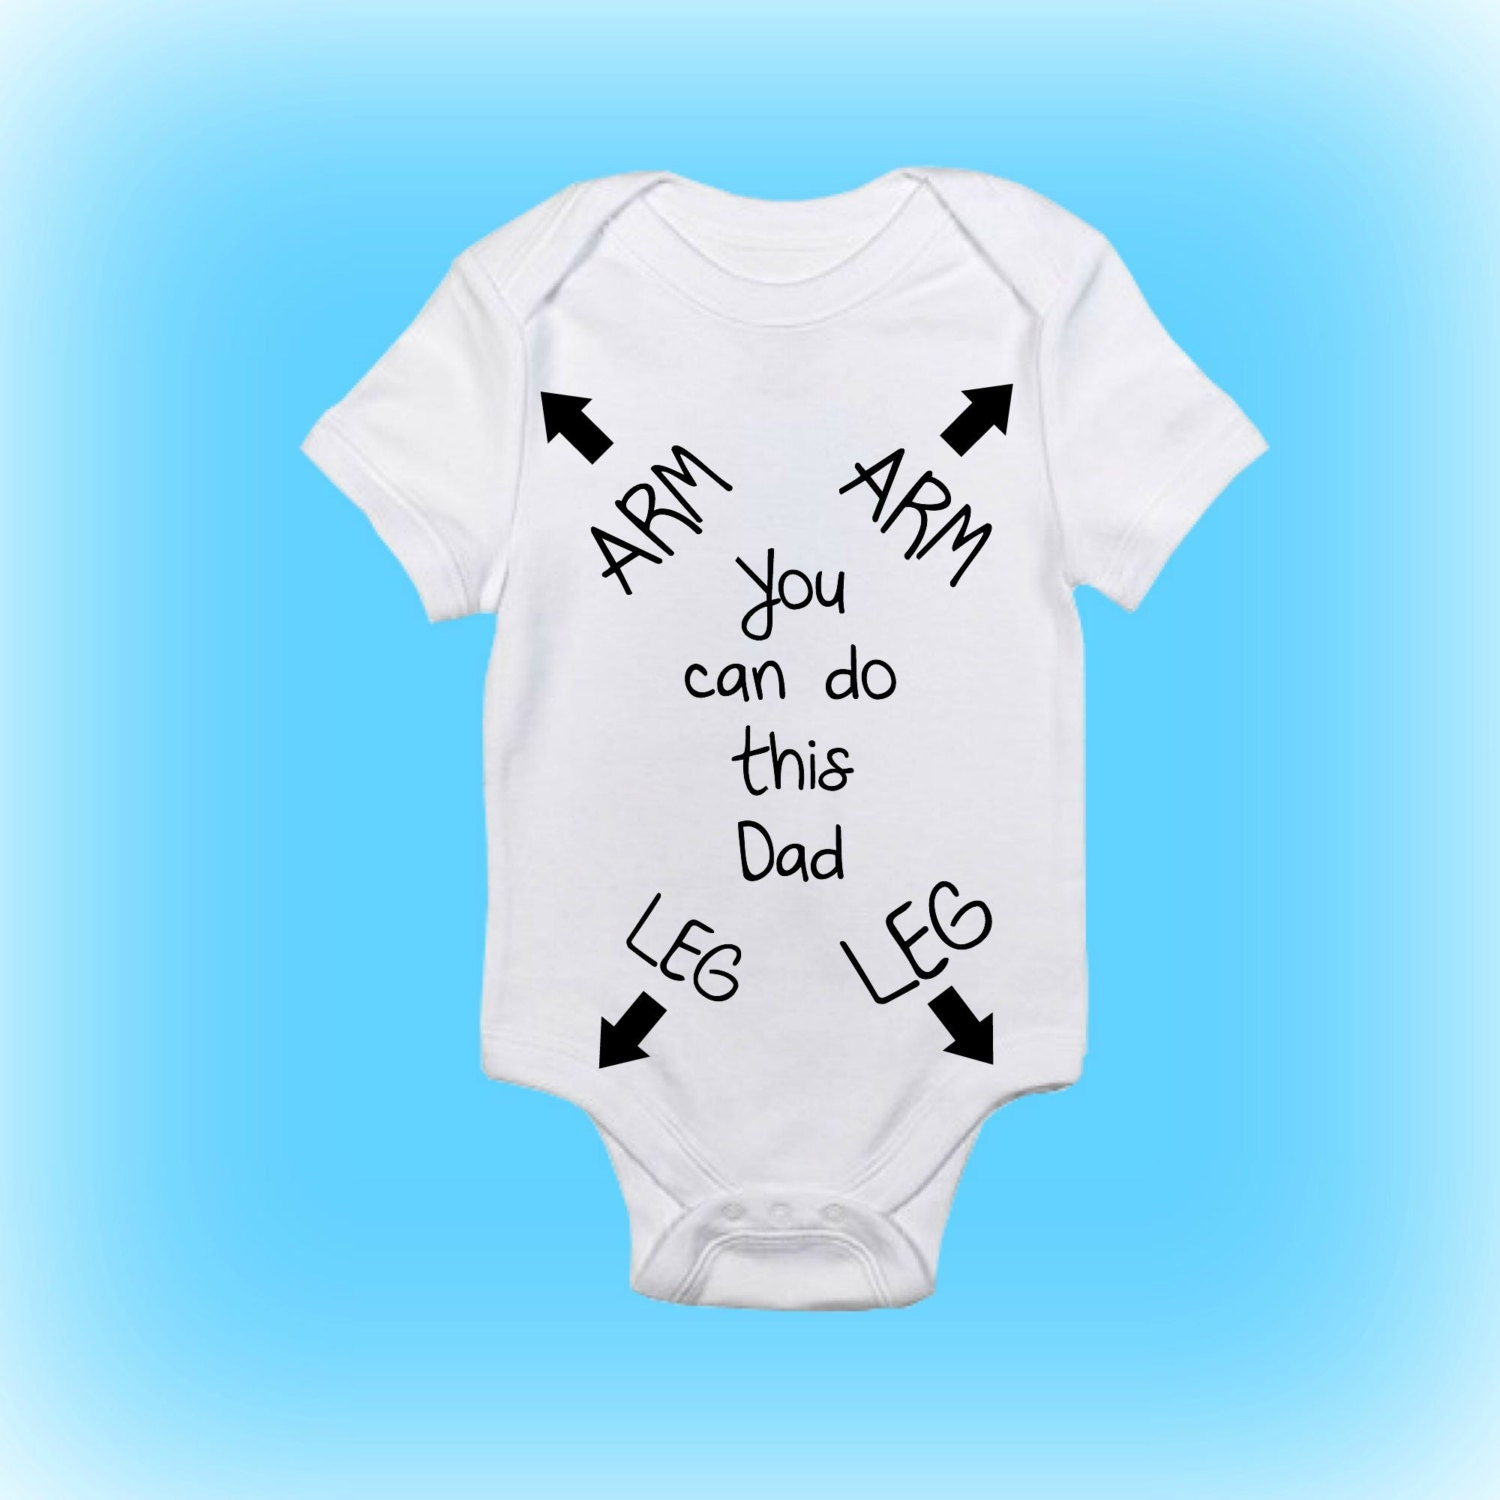 Gift For New Daddy Funny Baby Onesie 174 New Daddy Gift Baby Gift